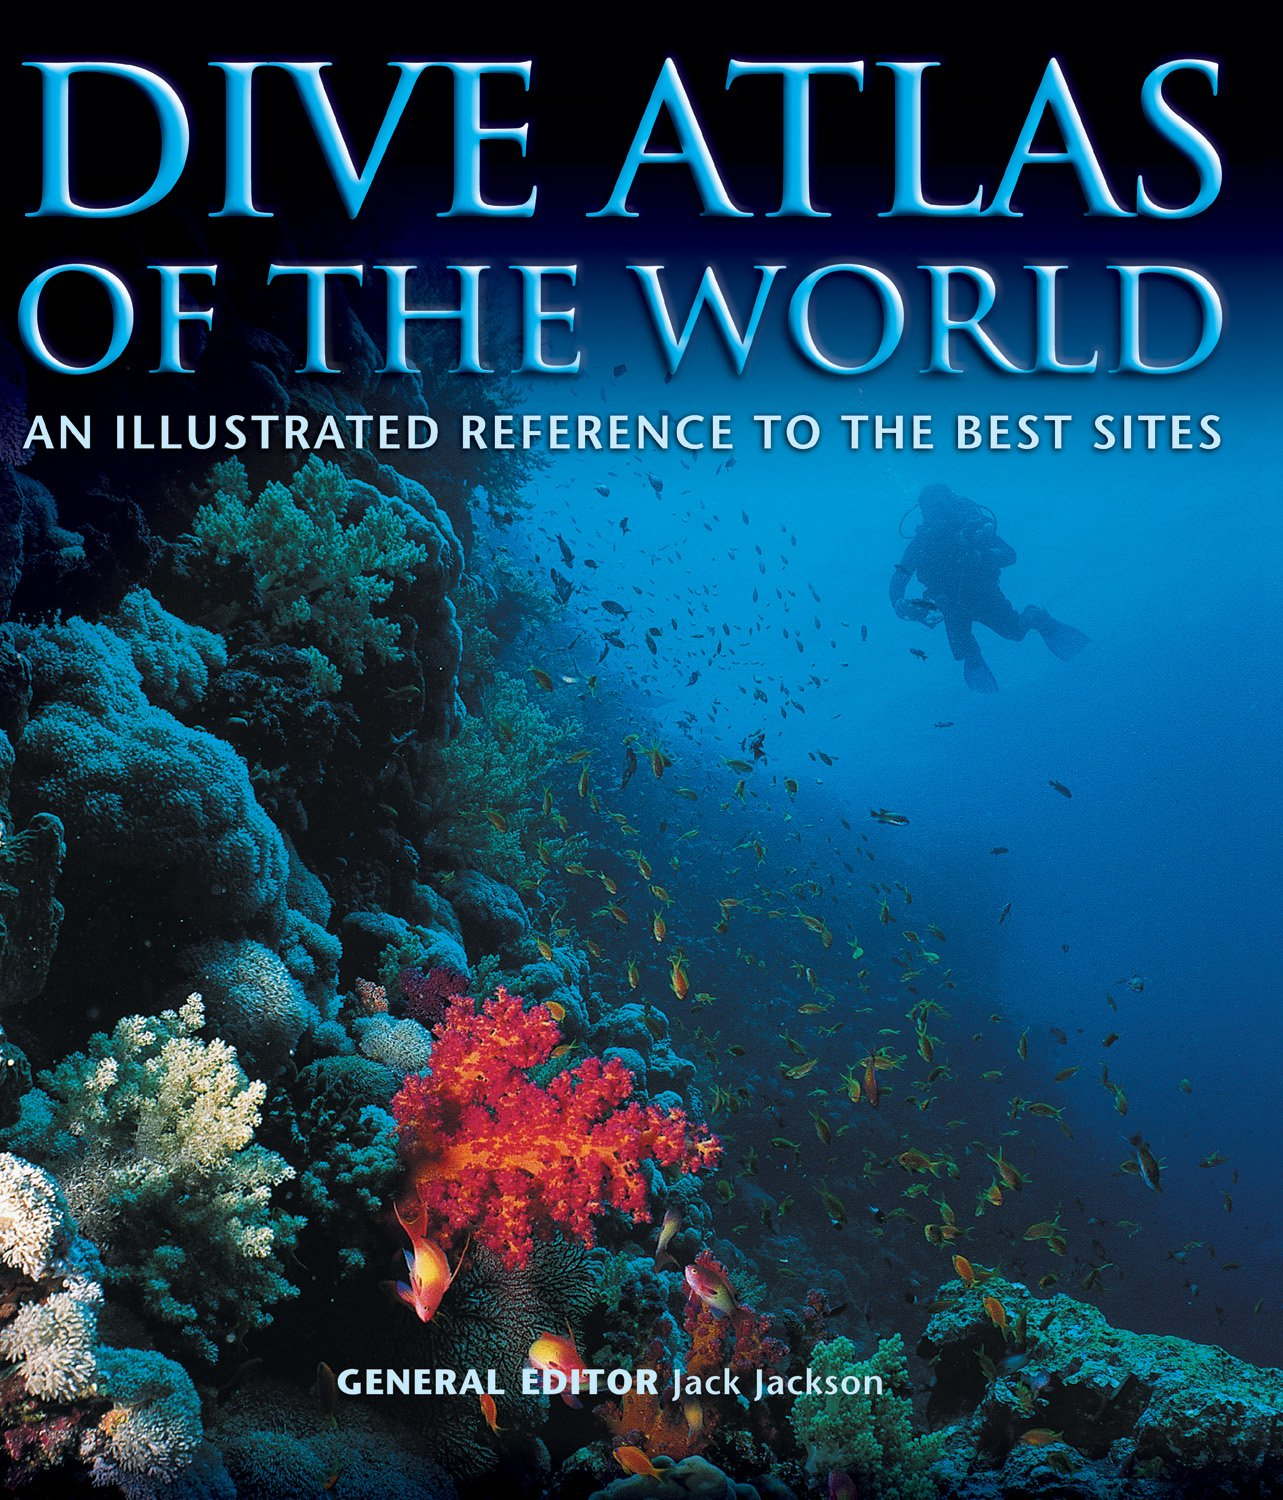 Dive Atlas of the World: An Illustrated Reference to the Best Sites (IMM Lifestyle Books) A Global Tour of Wrecks, Walls, Caves, and Blue Holes from Lawson Reef to the Red Sea to the Great Barrier by Design Originals